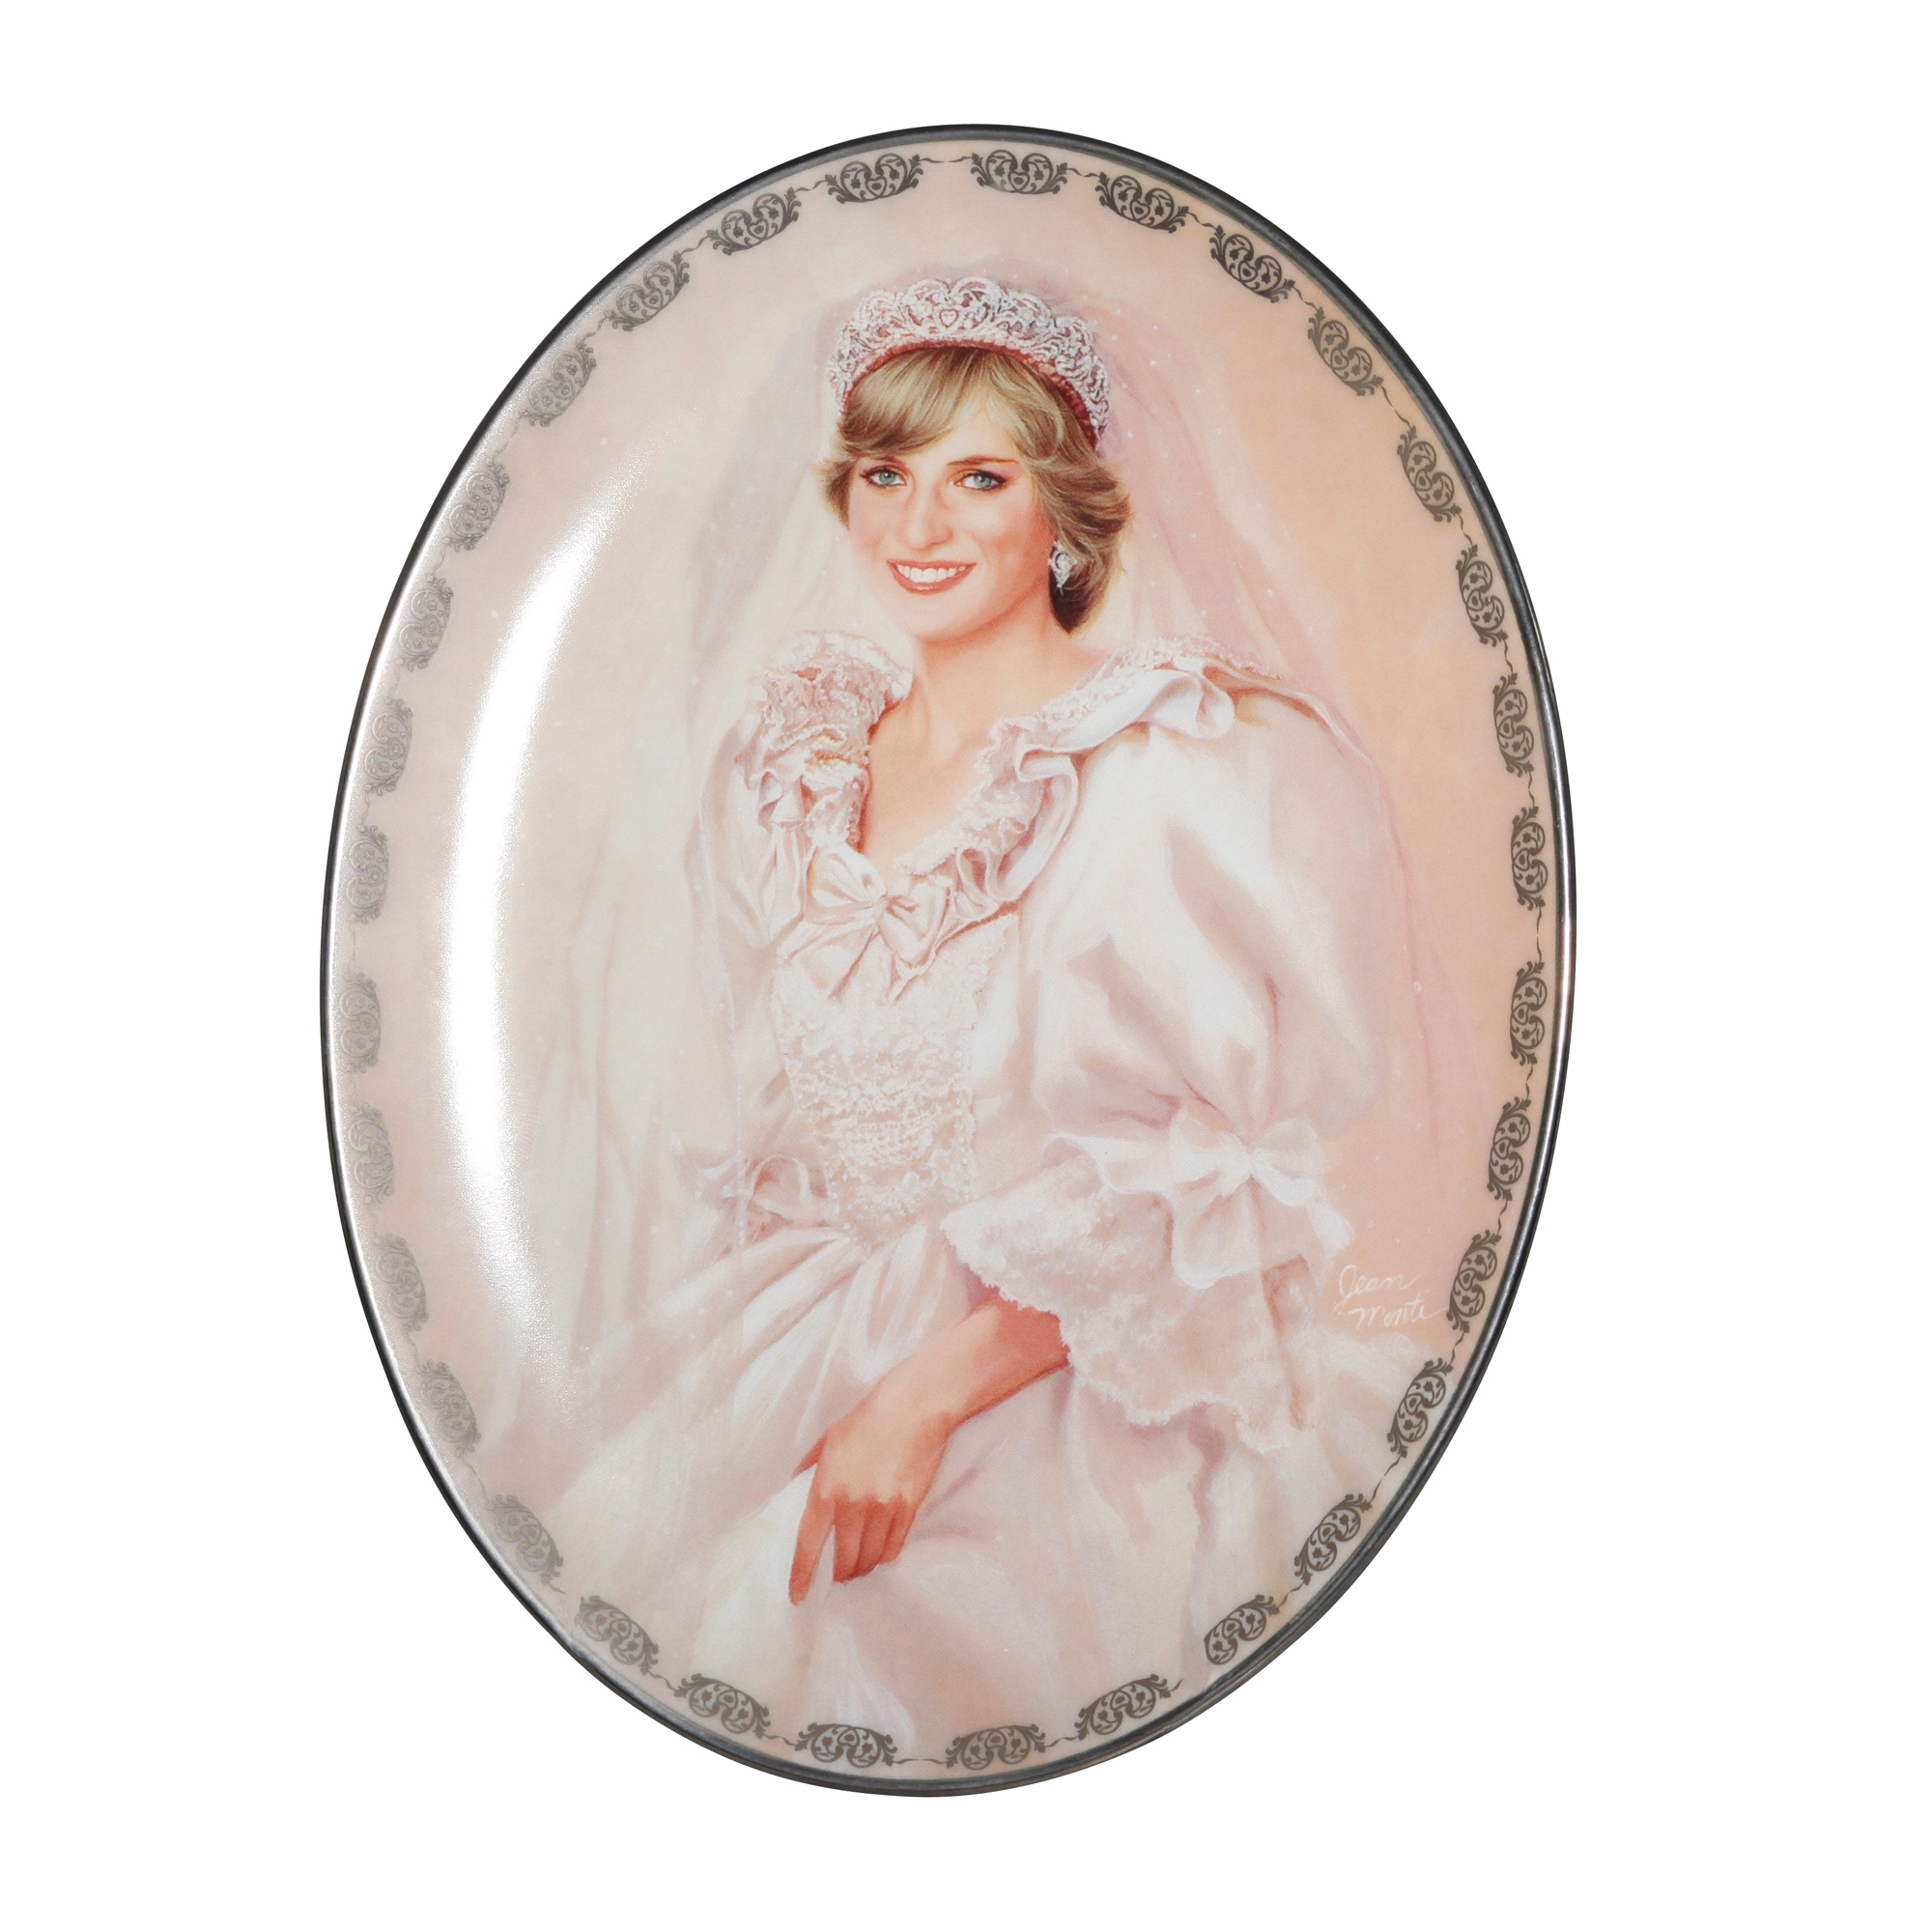 Commemorative Plate - The People's Princess by Jean Monti